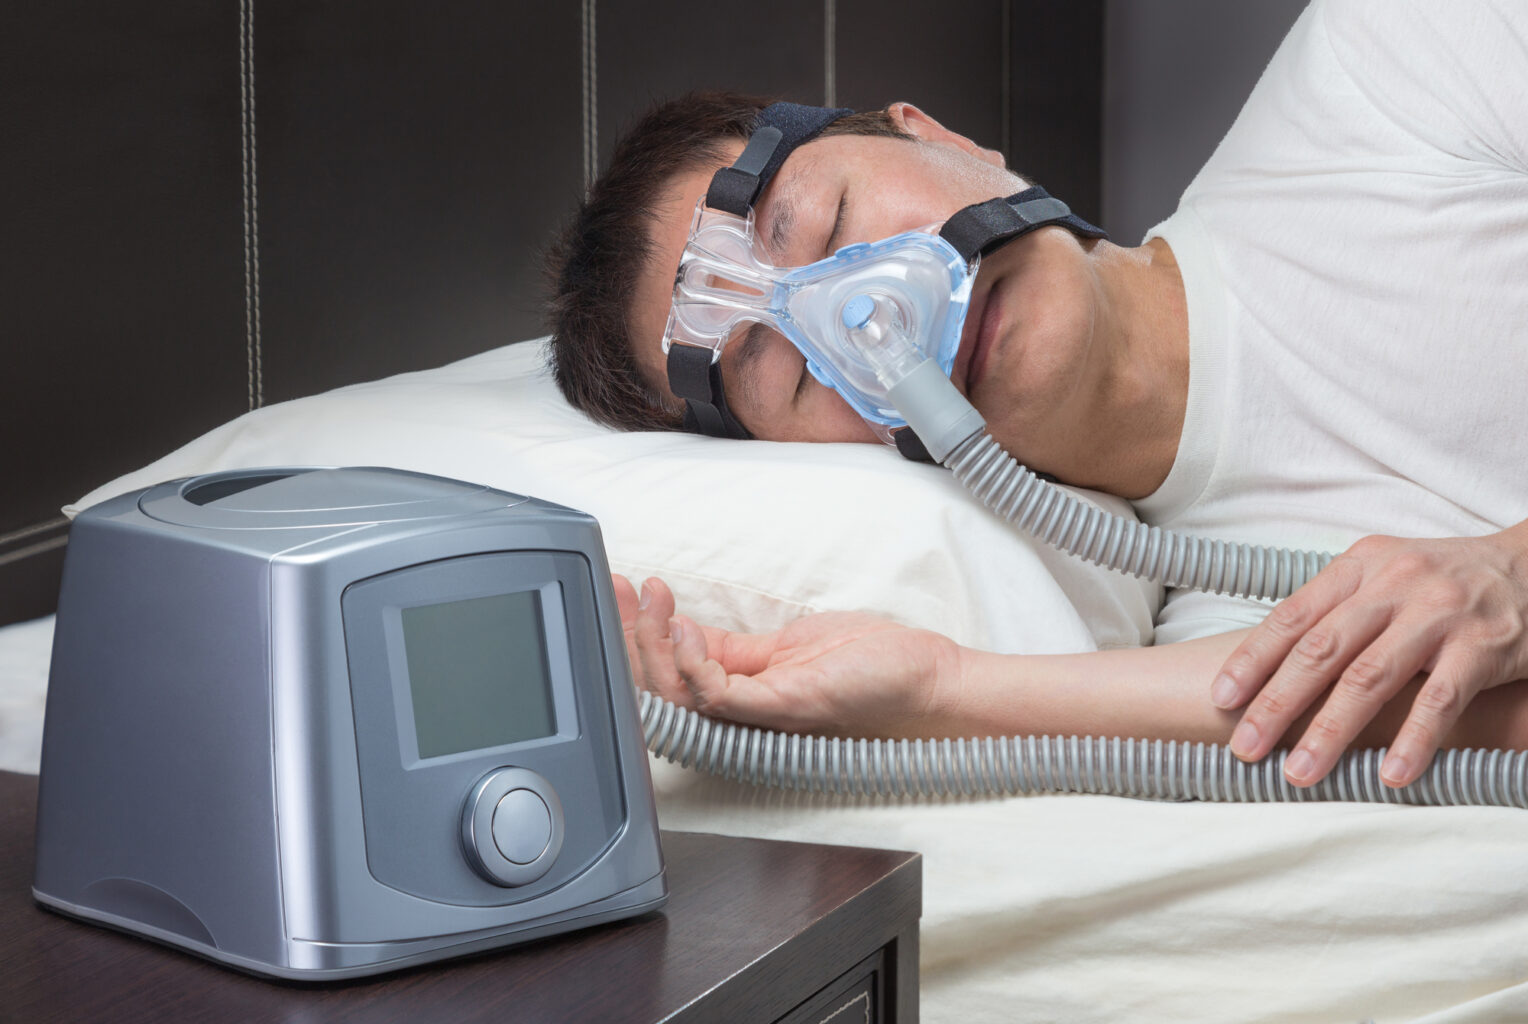 Does sleep apnea make you more susceptible to COVID-19?